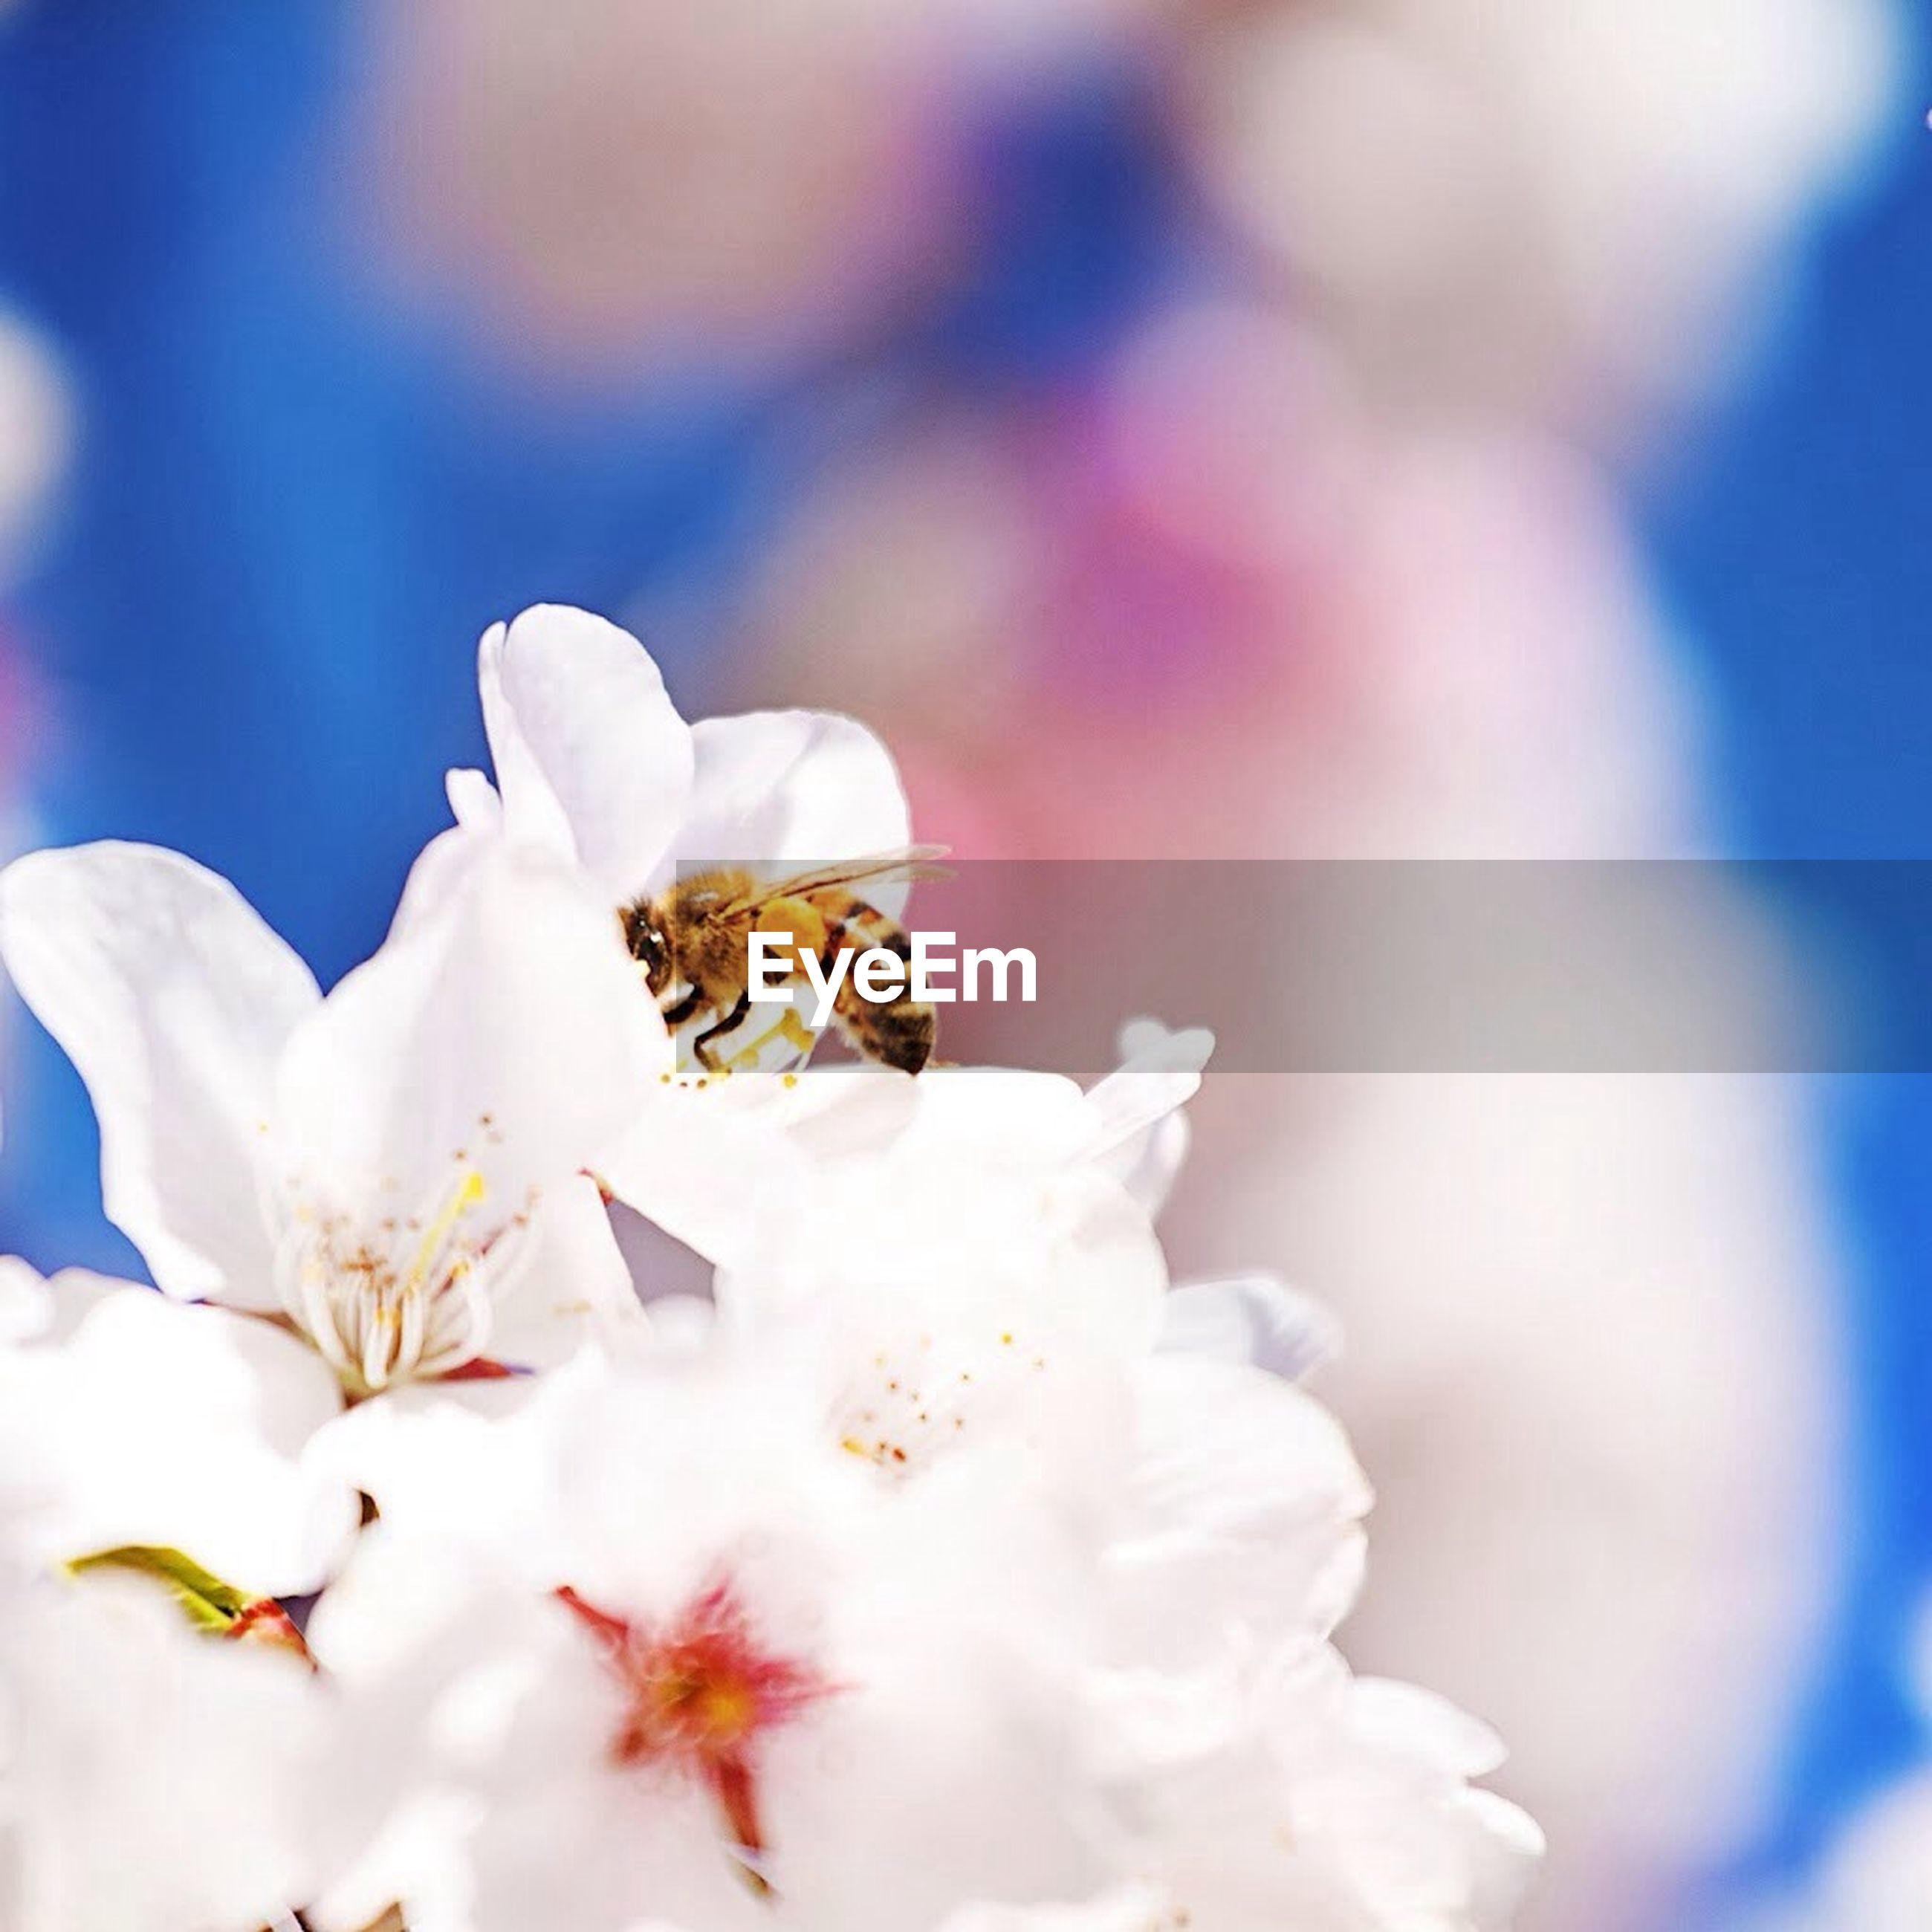 flower, petal, freshness, fragility, flower head, white color, beauty in nature, focus on foreground, close-up, growth, nature, blooming, stamen, selective focus, blossom, cherry blossom, in bloom, pollen, white, botany